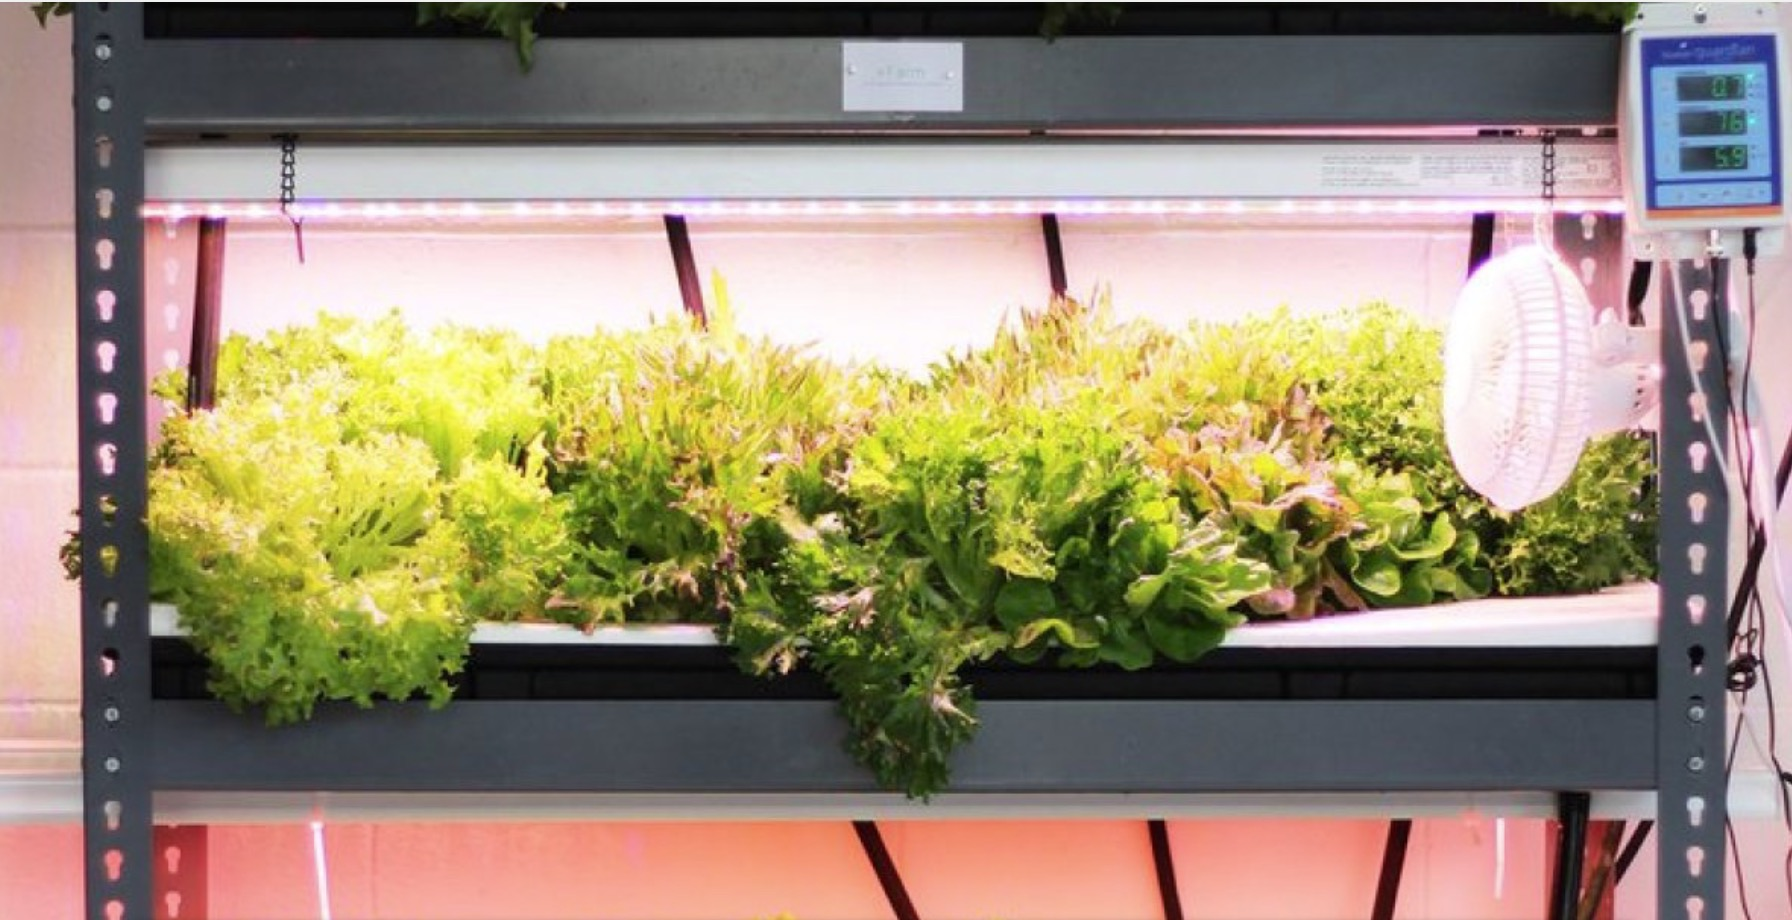 edible-innovations-going-vertical-smart-way-farm